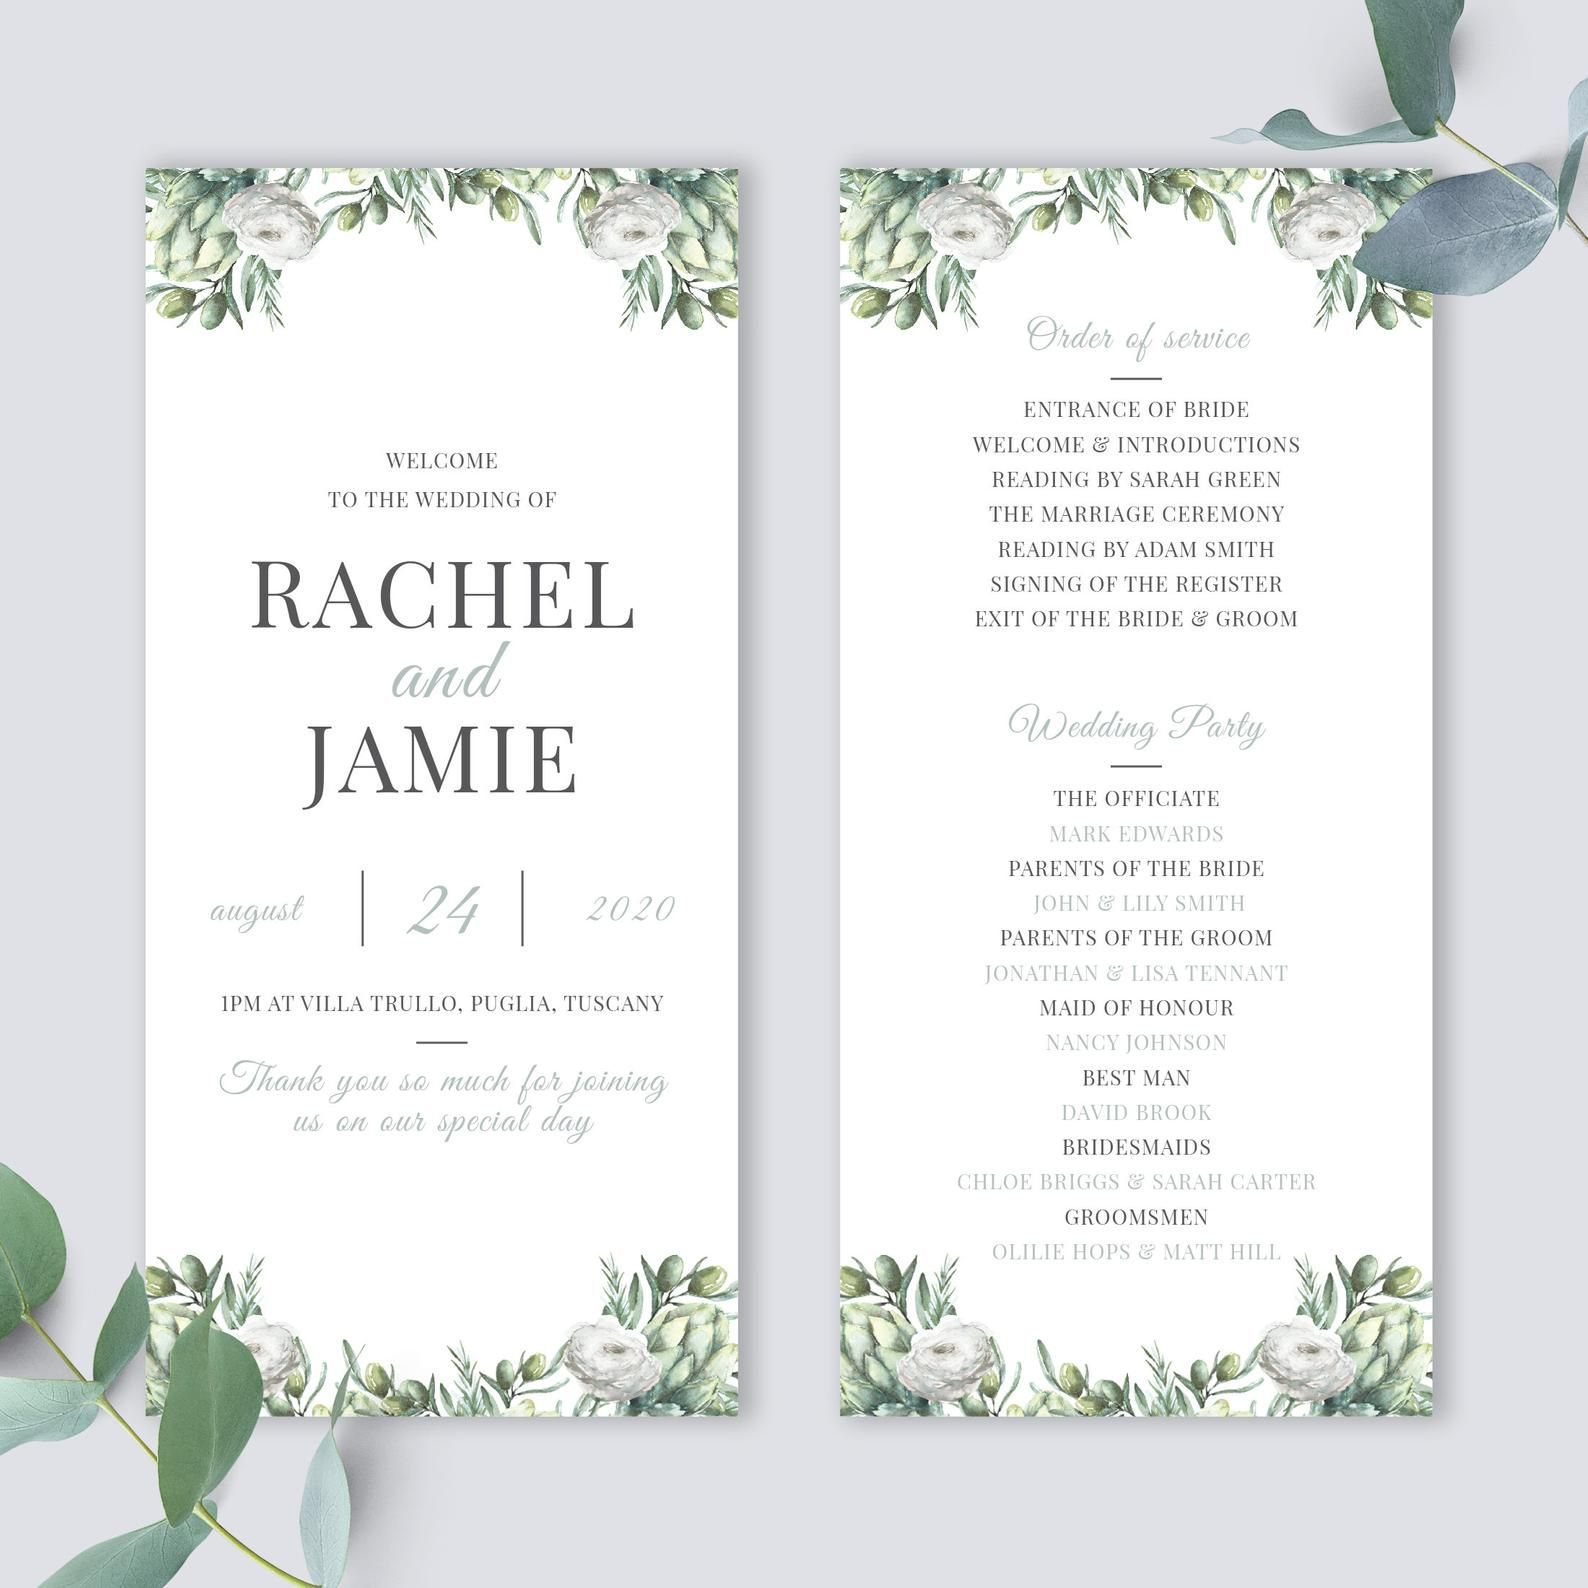 000 Simple Wedding Order Of Service Template Example  Church Free Microsoft Word DownloadFull